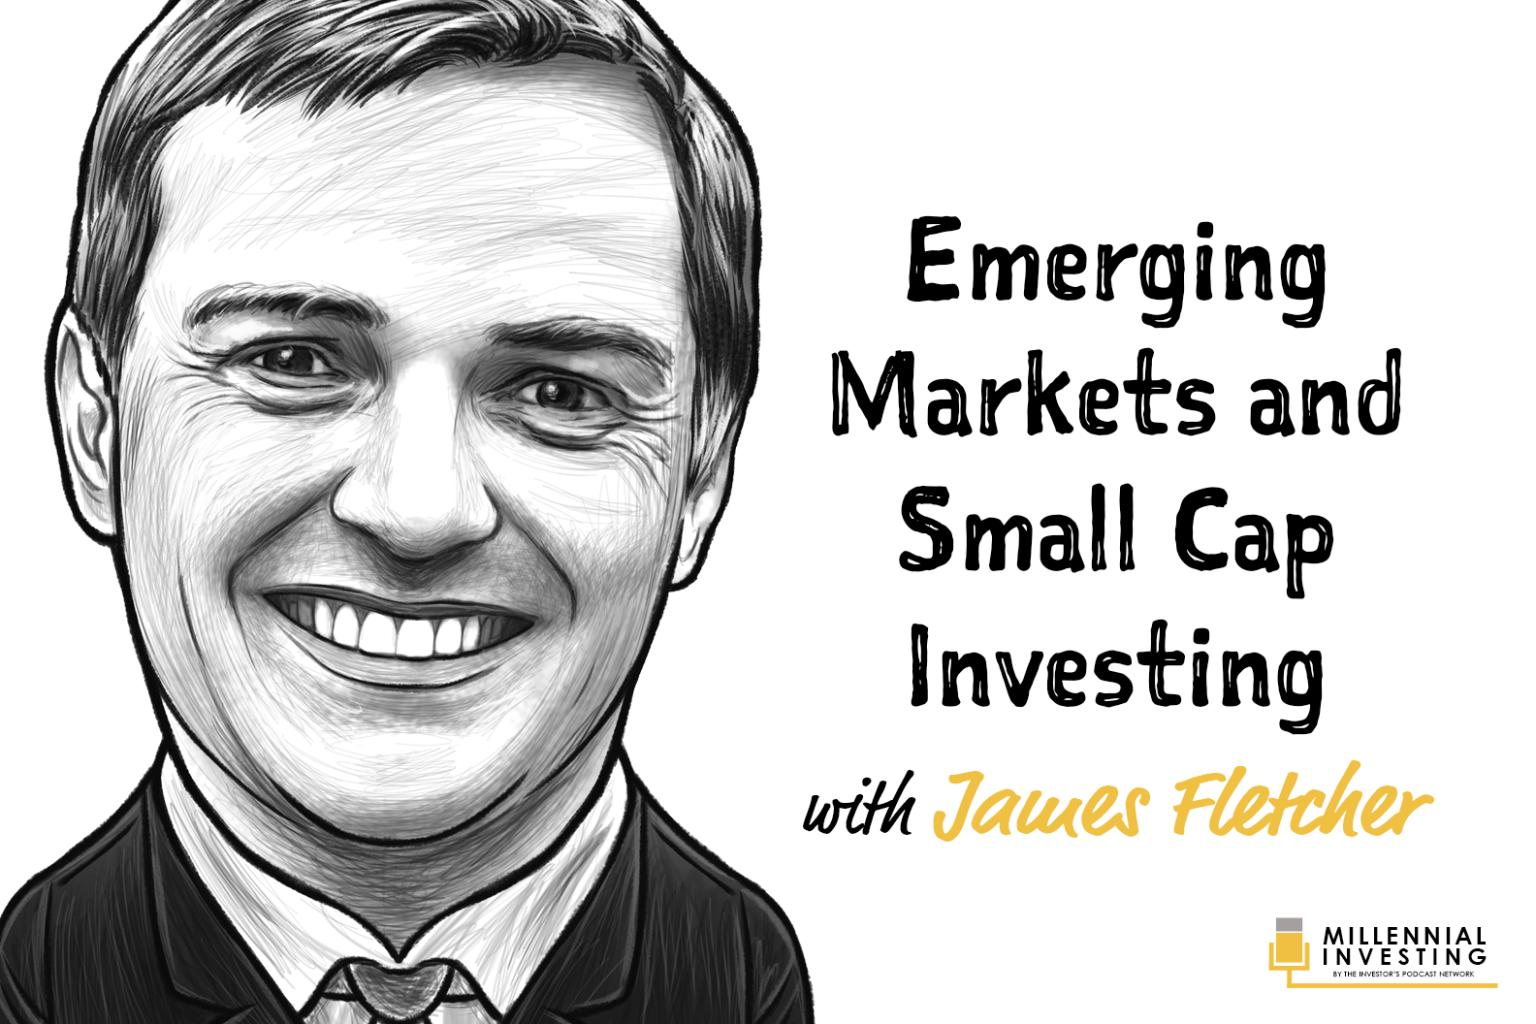 Financial Podcast Featuring YIS's James Fletcher